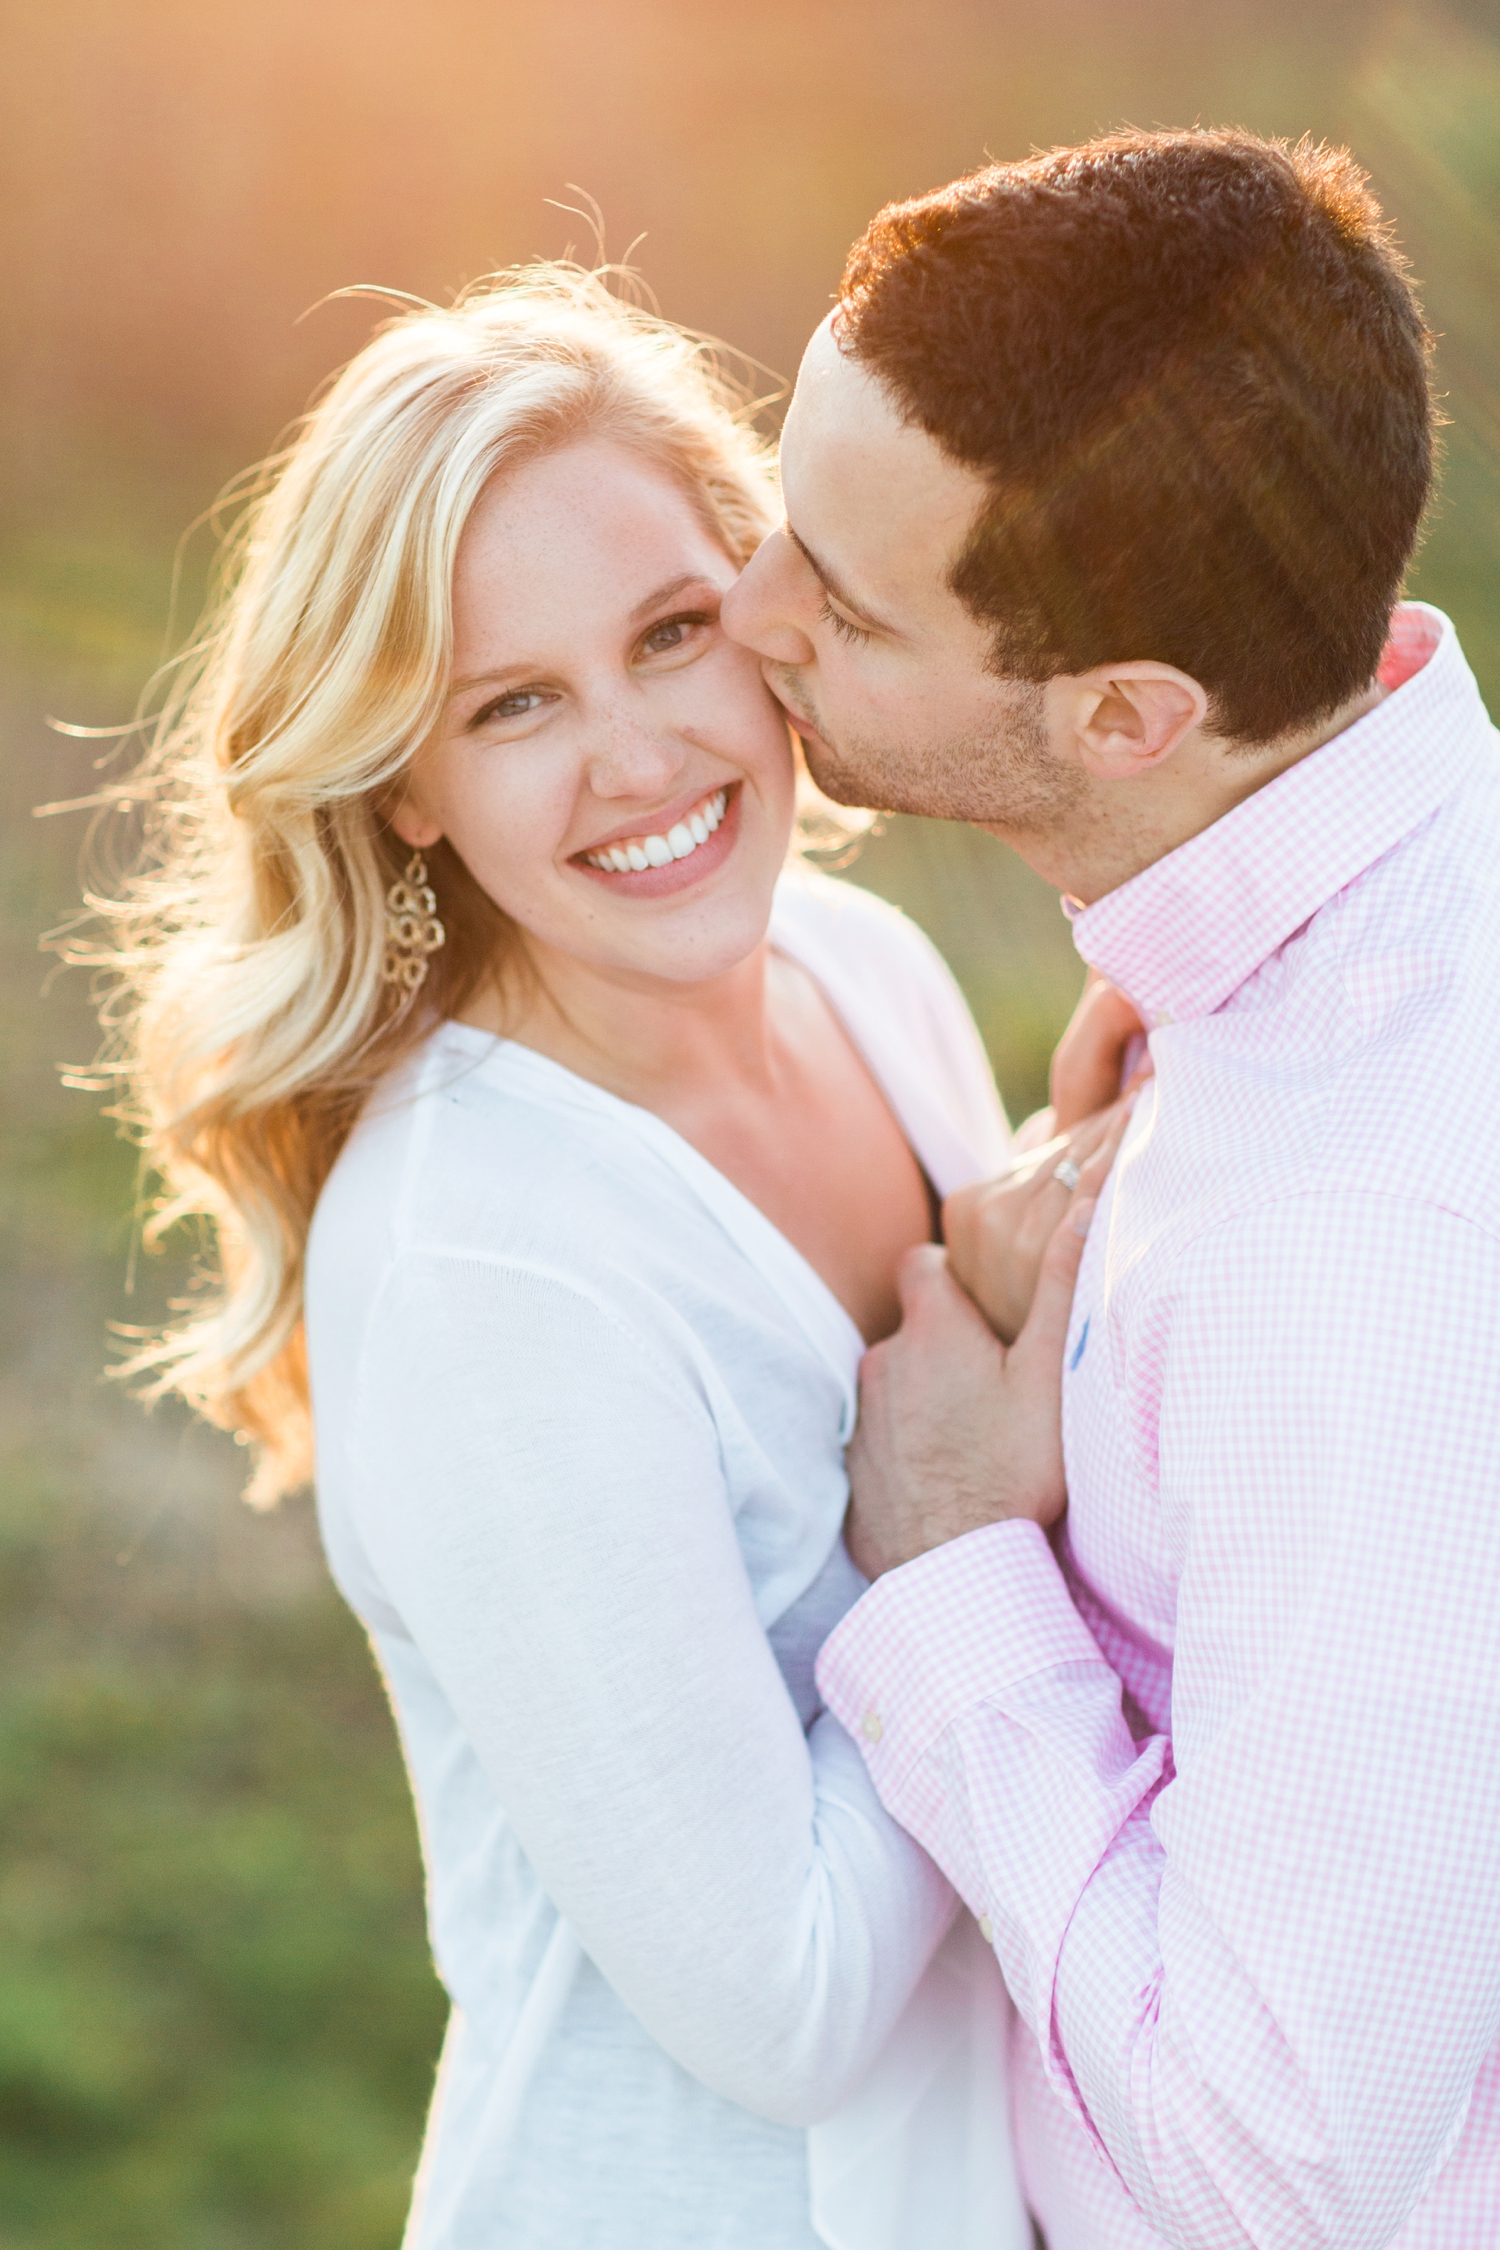 indianapolis_wedding_photographer_golden_hour_engagement_chloe_luka_photography_6142.jpg